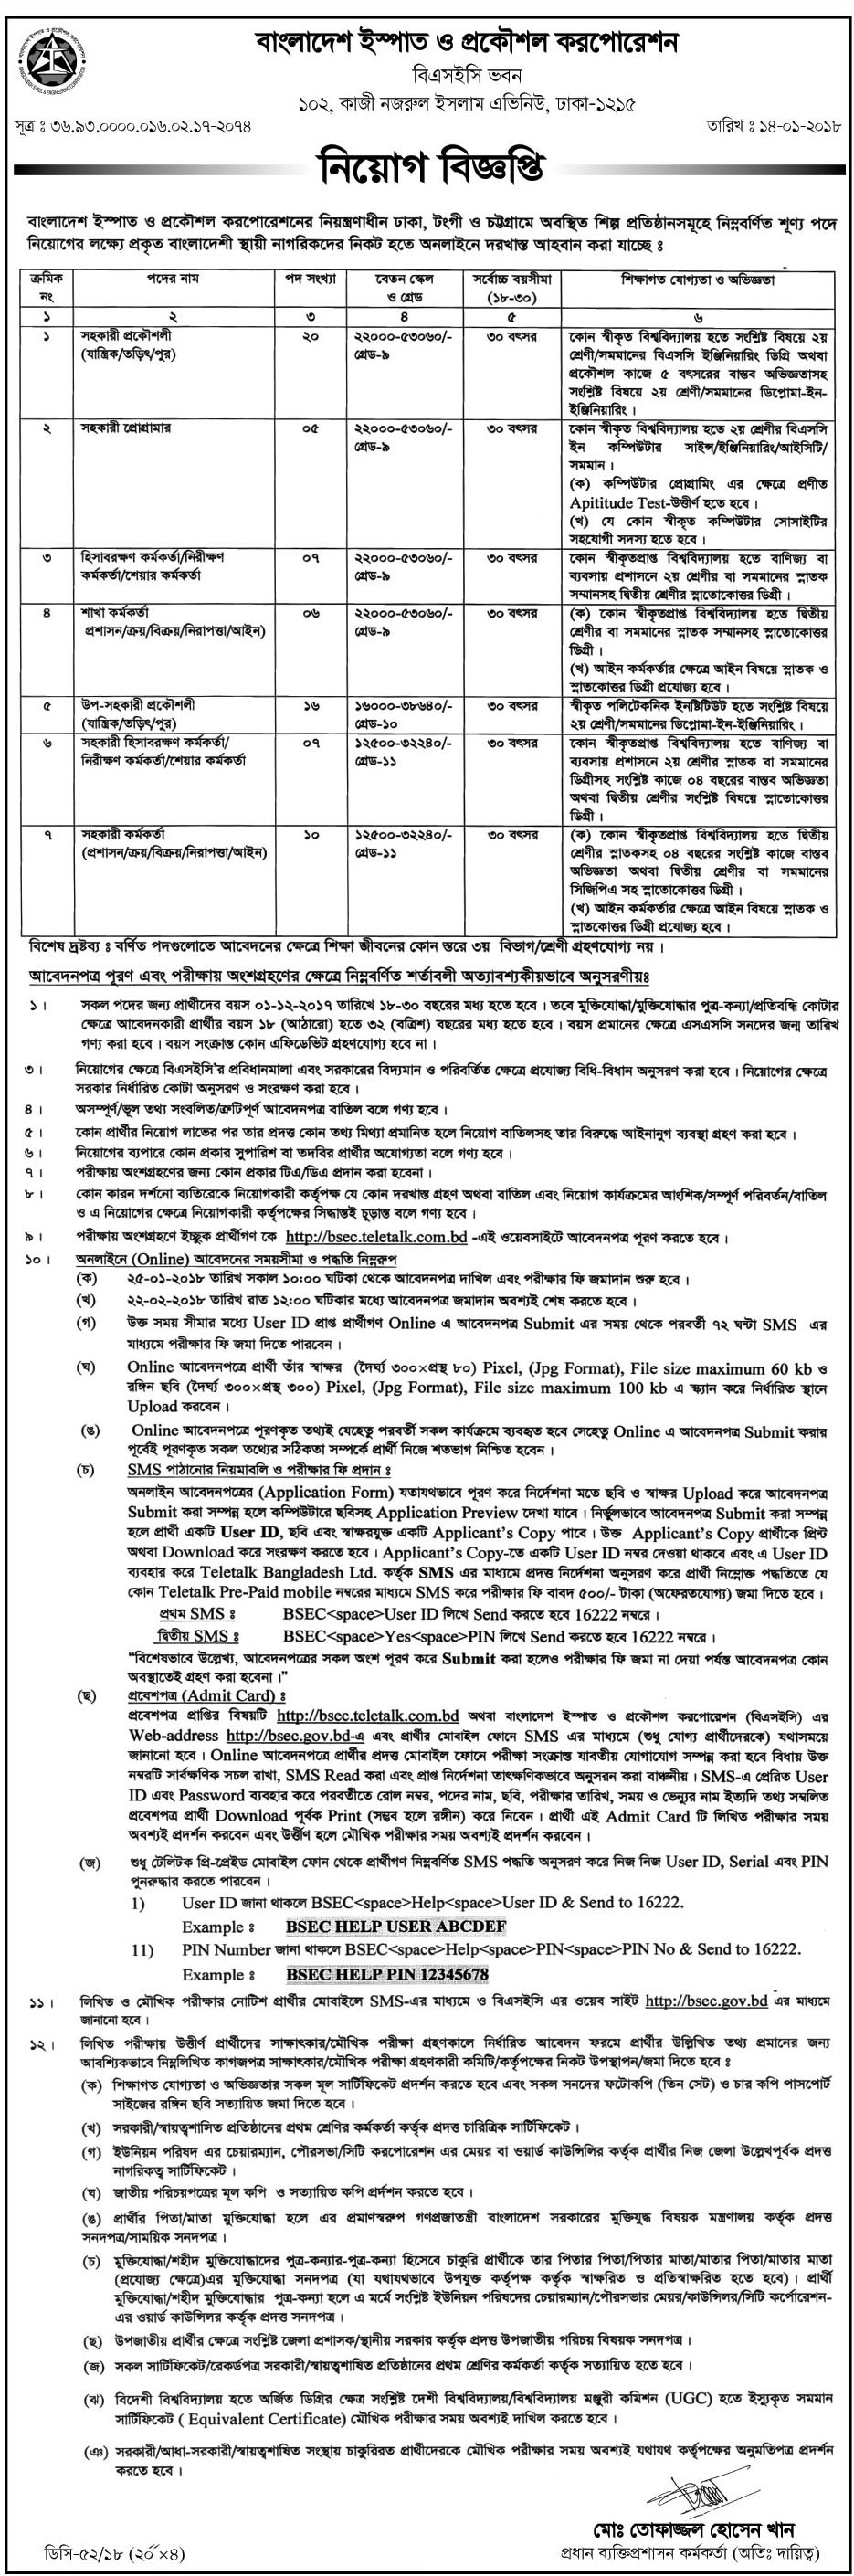 Bangladesh Steel & Engineering Corporation BSEC Job Circular 2018